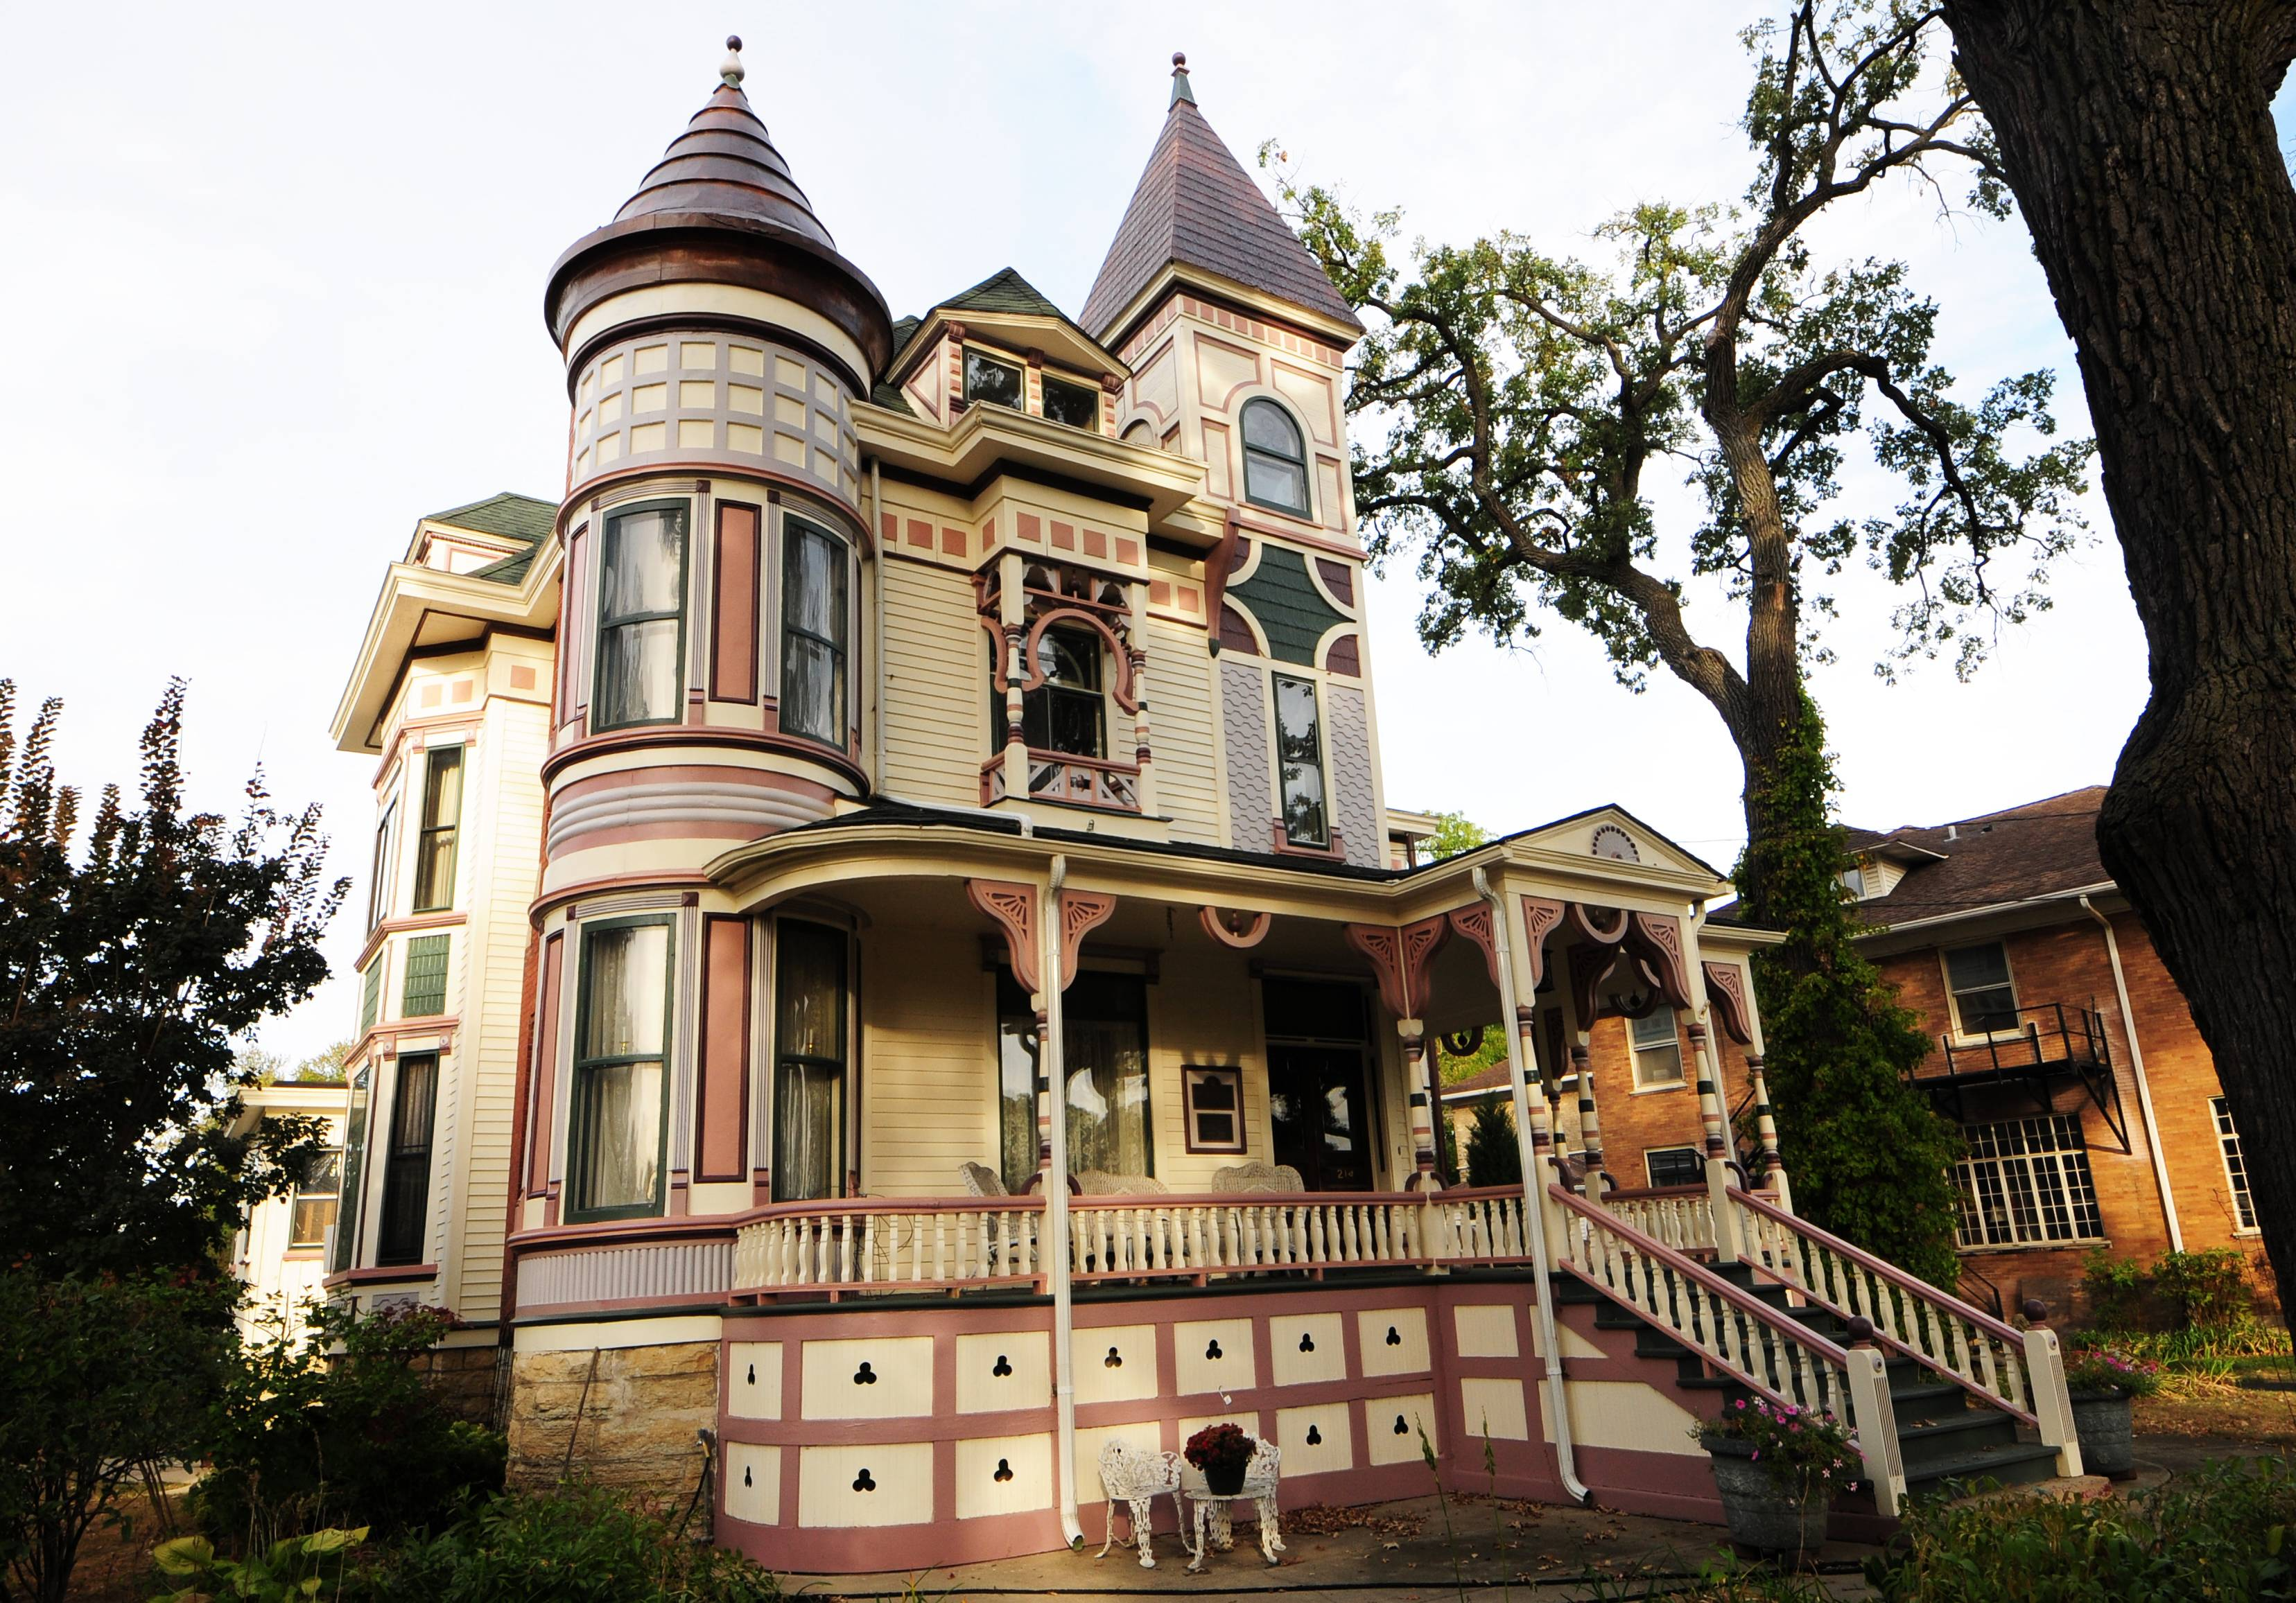 This Elgin home on South State Street is the grand prize winner of the CPCA 2017 Painted Ladies competition. Entries for the 2018 contest are now being accepted.